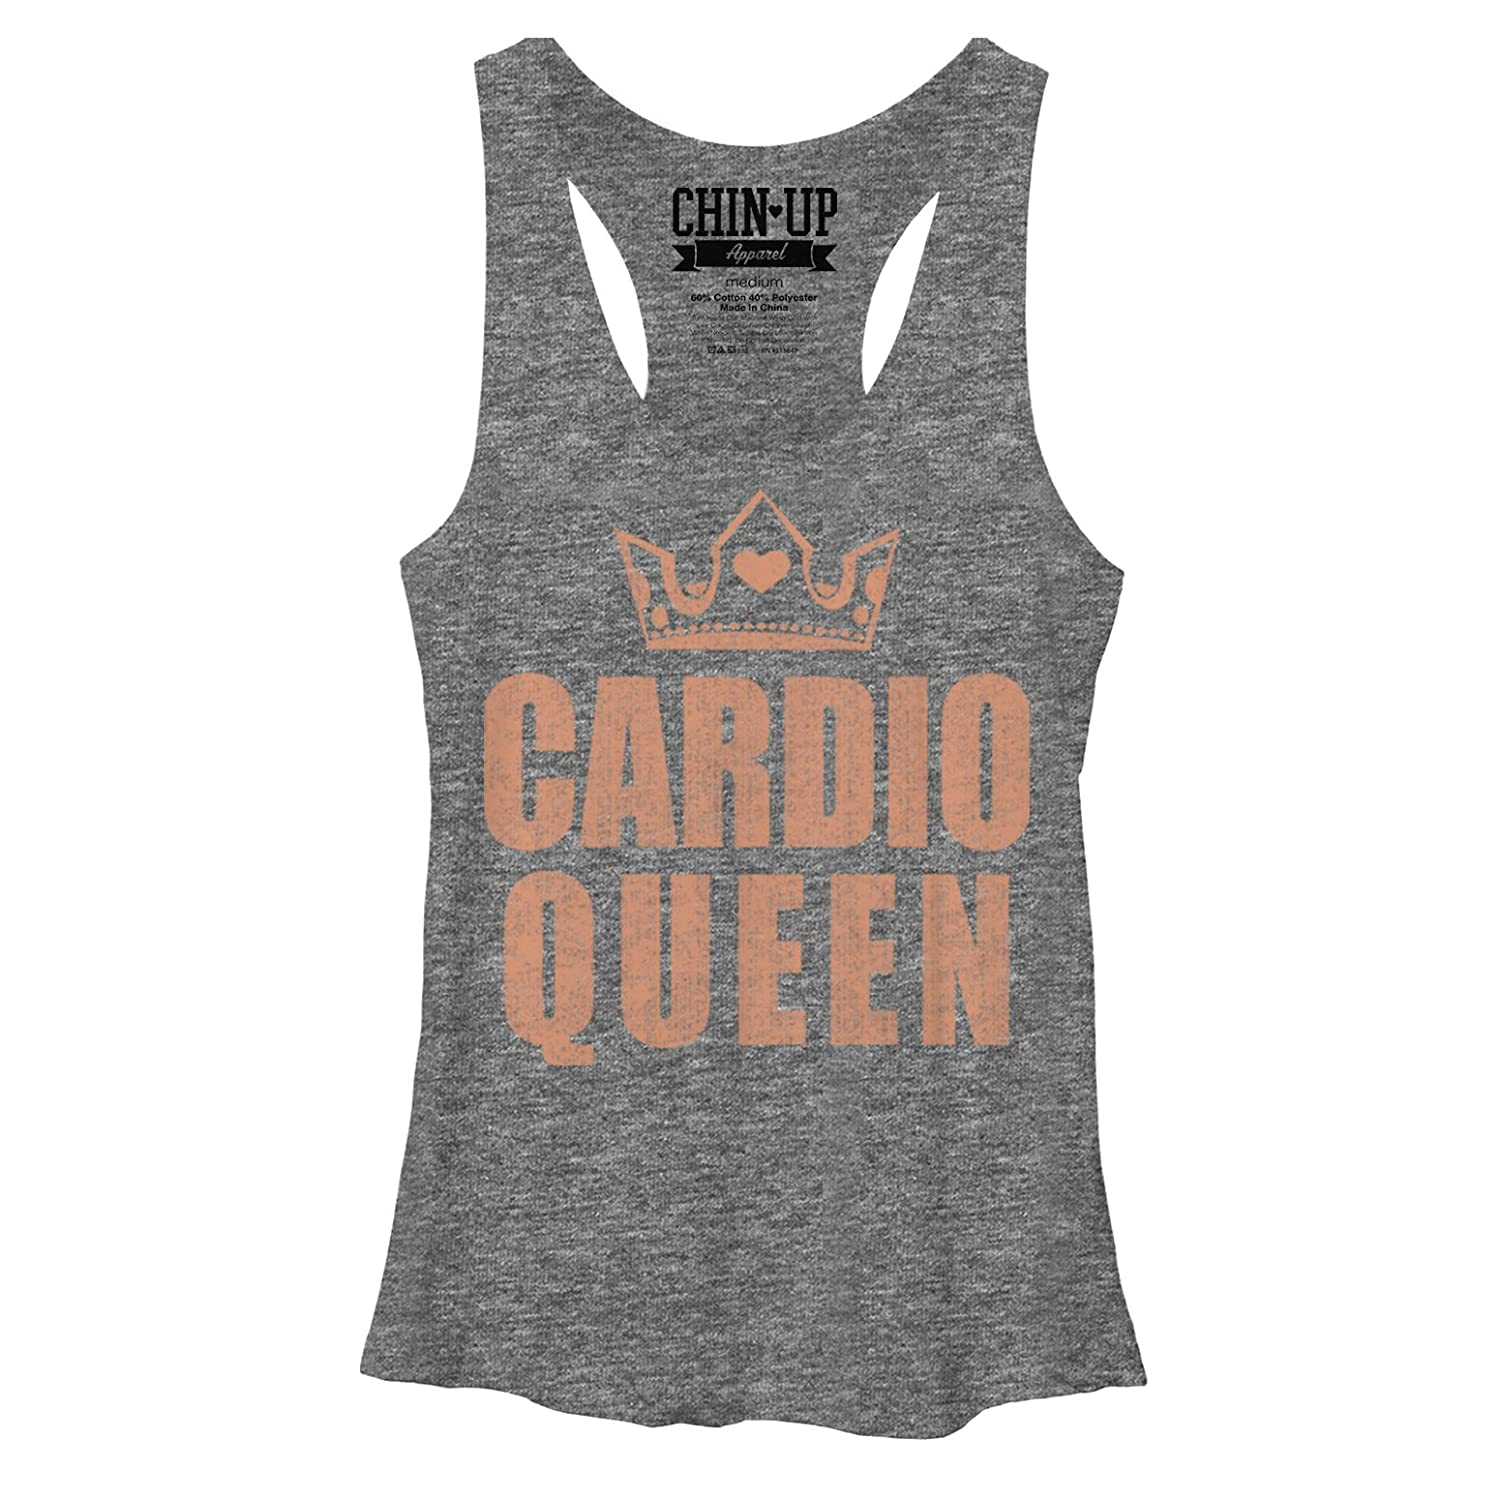 CHIN UP Cardio Queen Crown Womens Graphic Racerback Tank